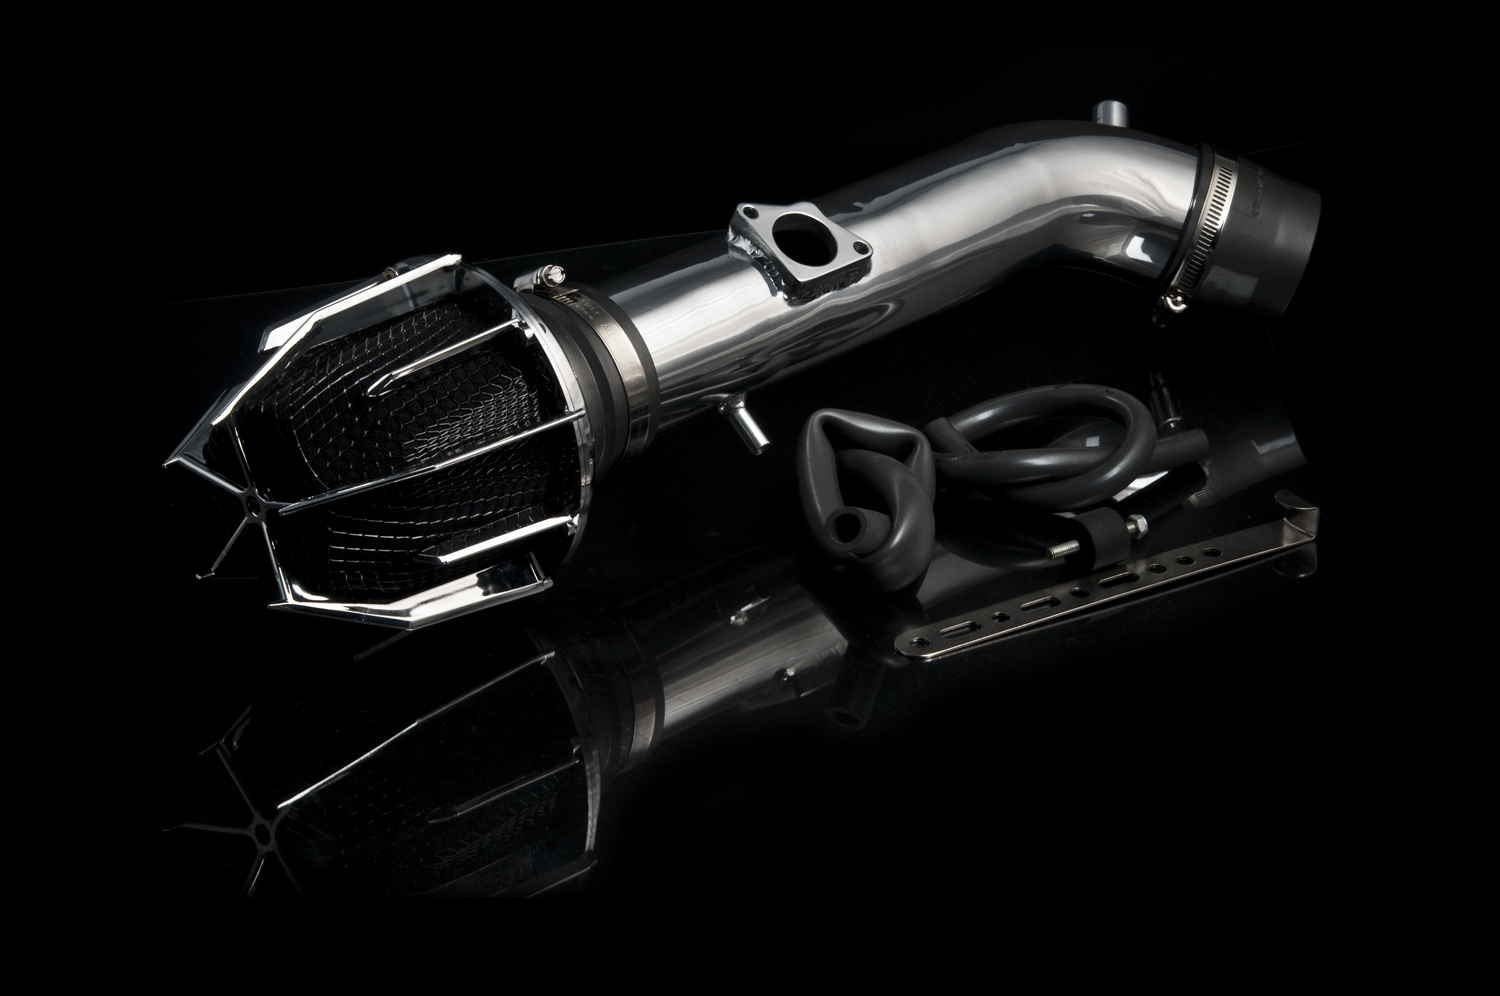 Lexus IS300 2000-2005 Weapon-R Dragon Air Intake